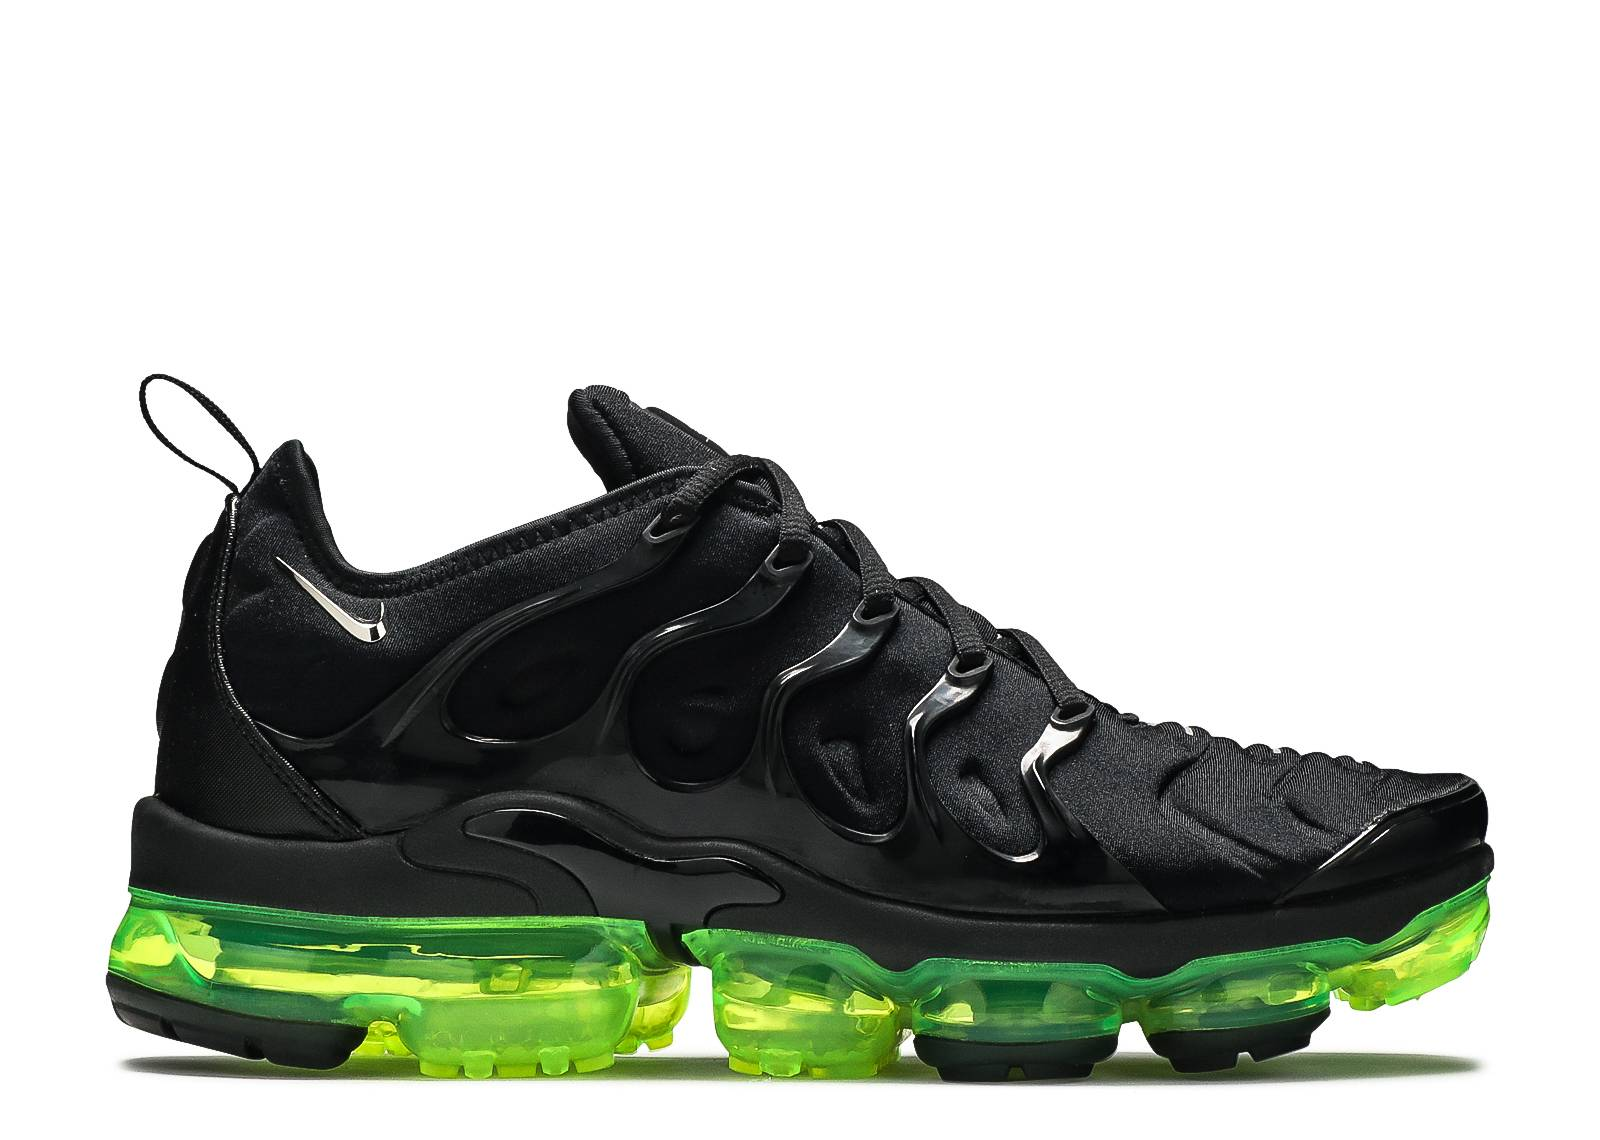 detailed look 8fcbc 6e047 Vapormax - Nike Running - Nike | Flight Club